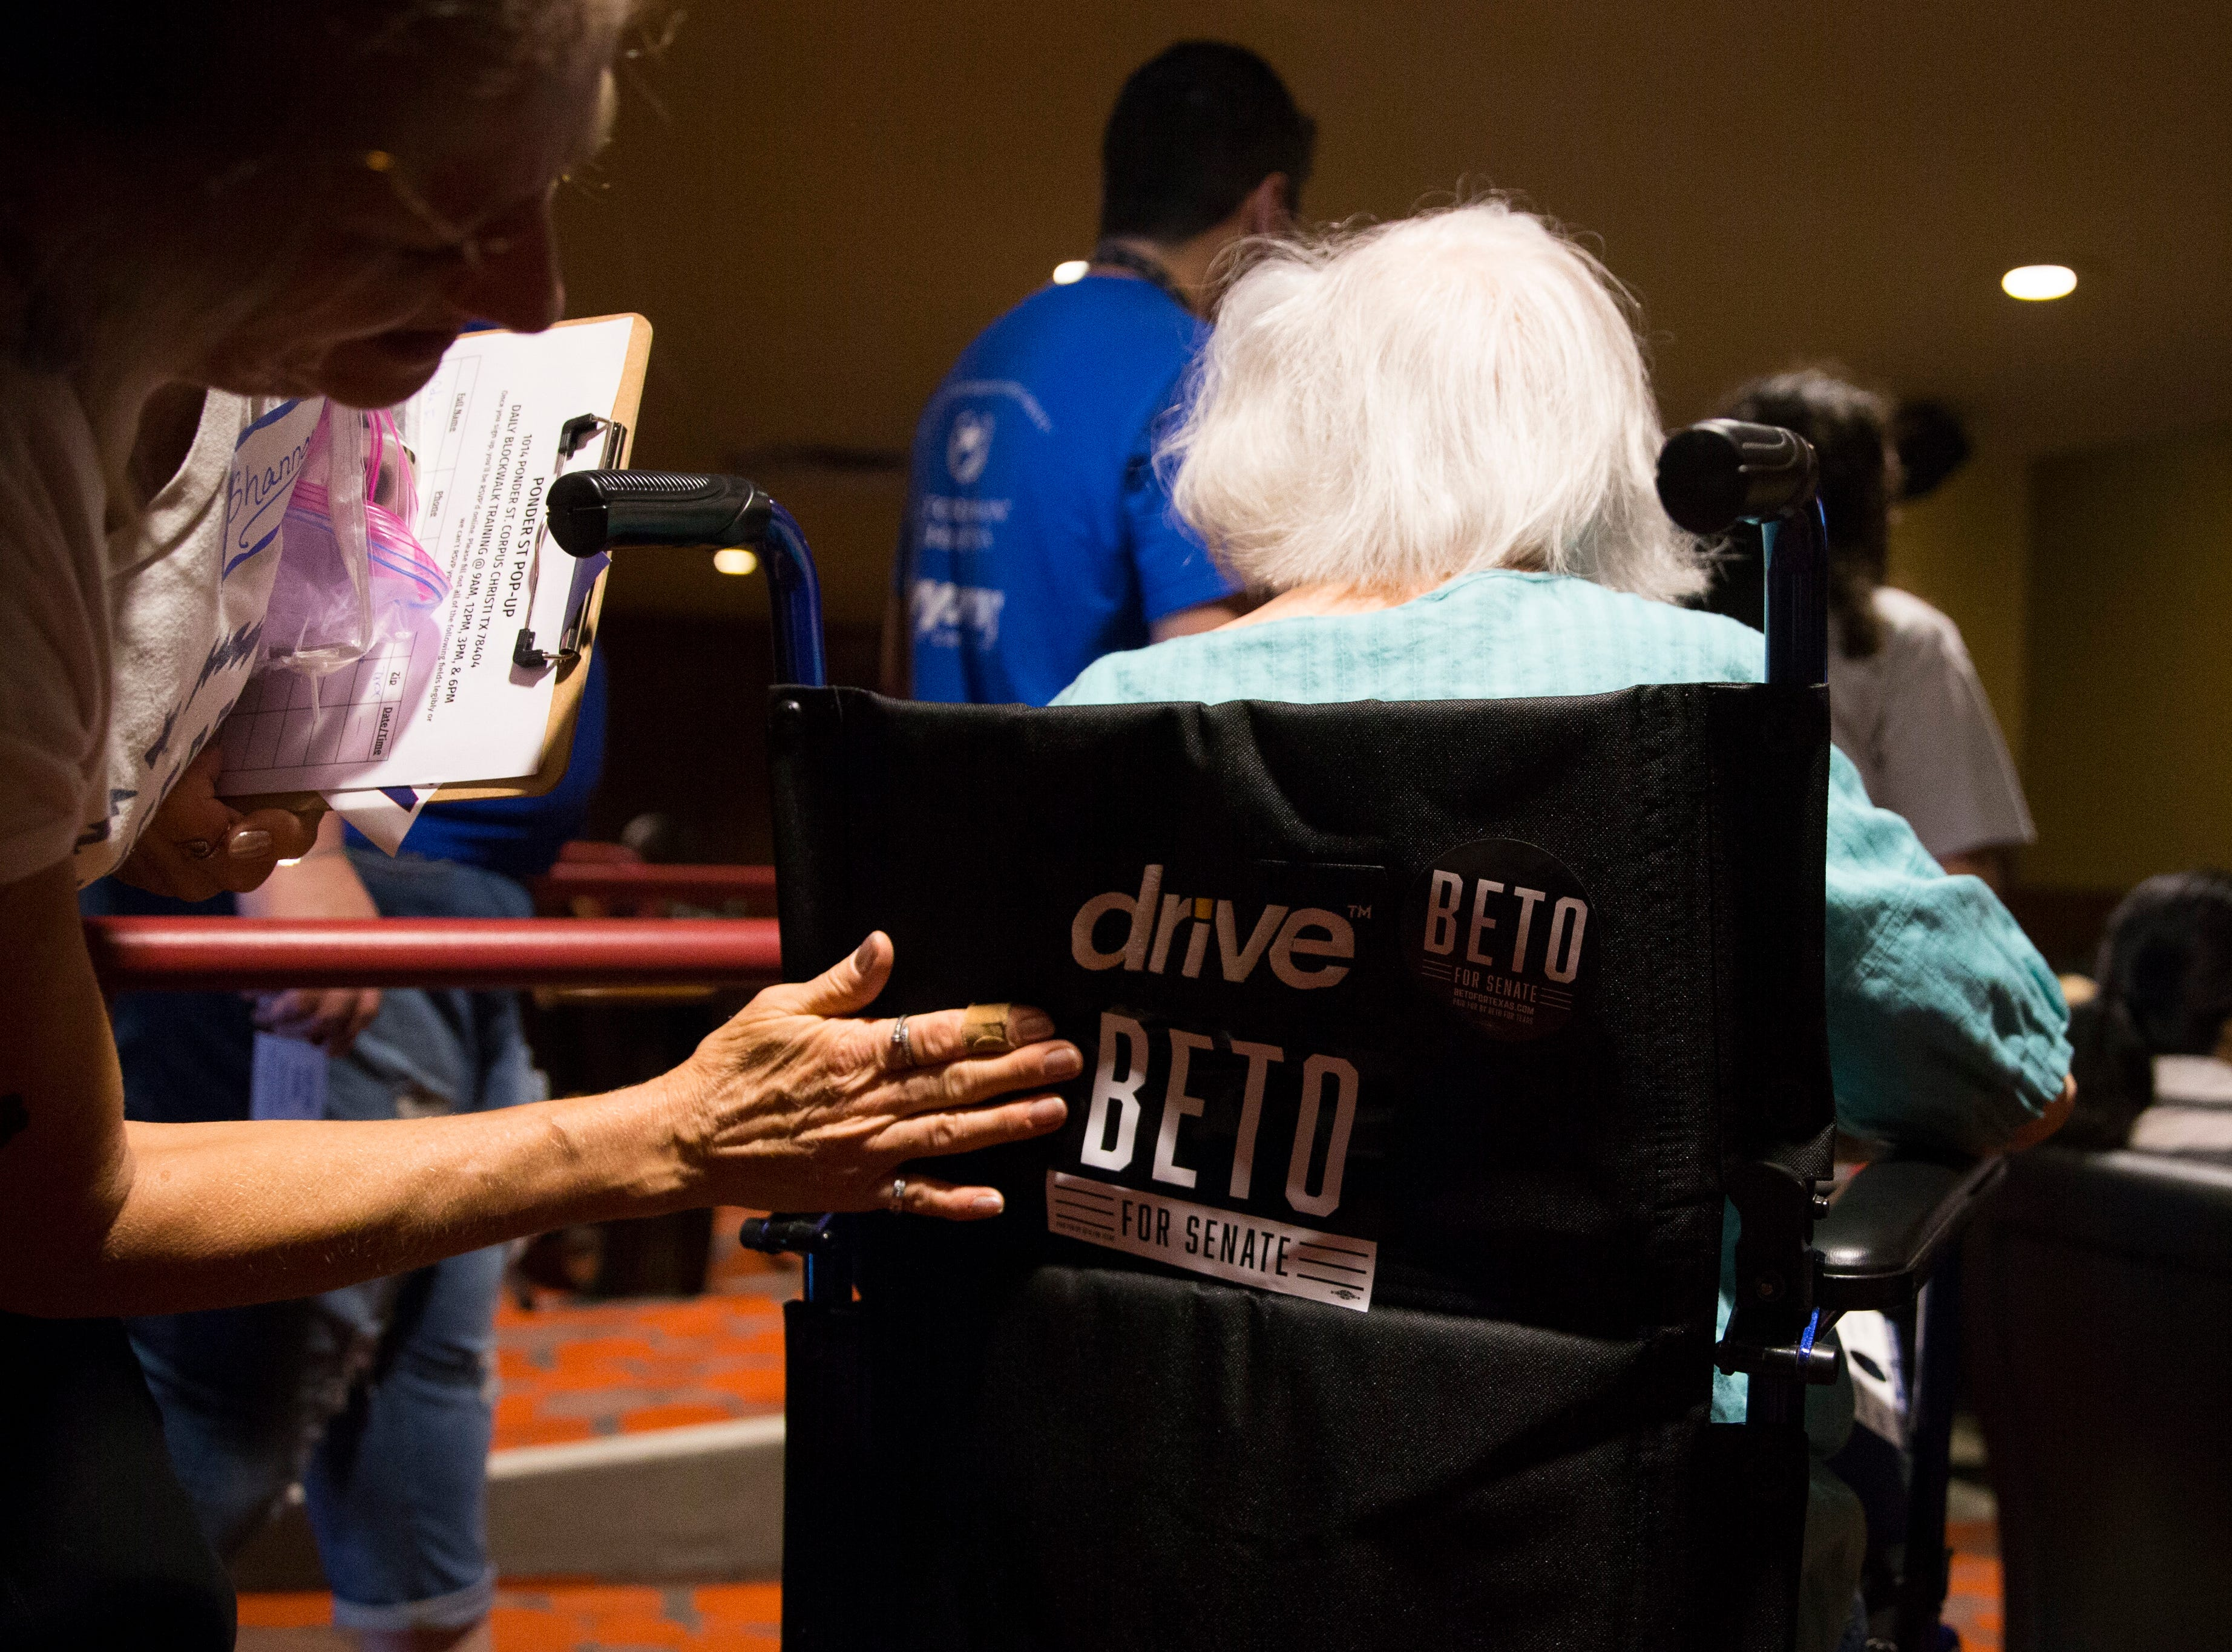 A woman attaches a Beto O'Rourke sticker to a wheel chair  during a campaign event on Saturday, Oct. 13, 2018 at Del Mar College in Corpus Christi.